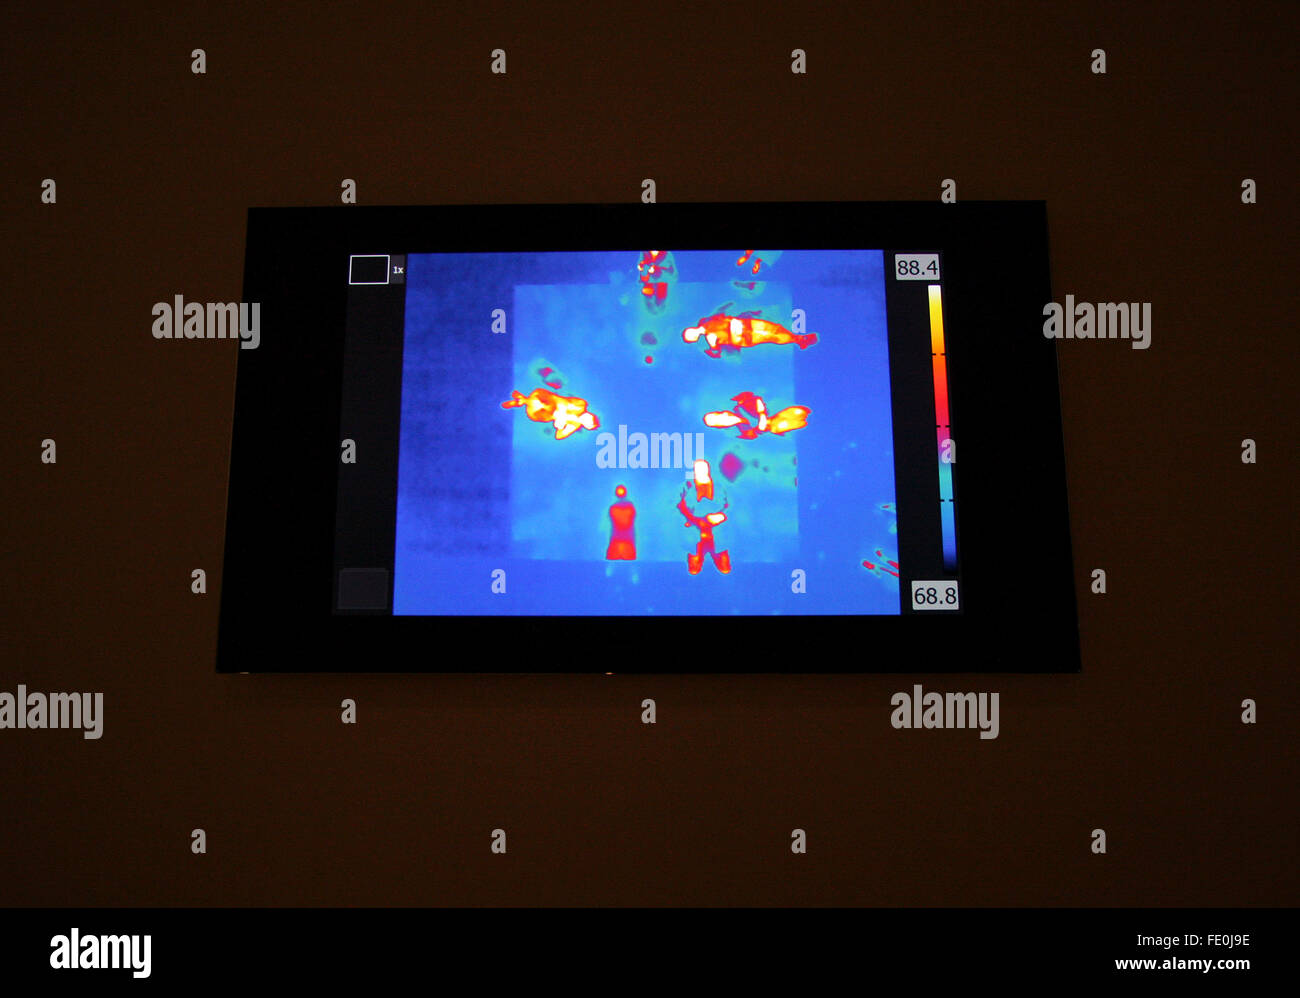 New York City, NY, USA. 3rd February, 2016. Thermal images of visitors lying on a bed like platform,  are part of - Stock Image